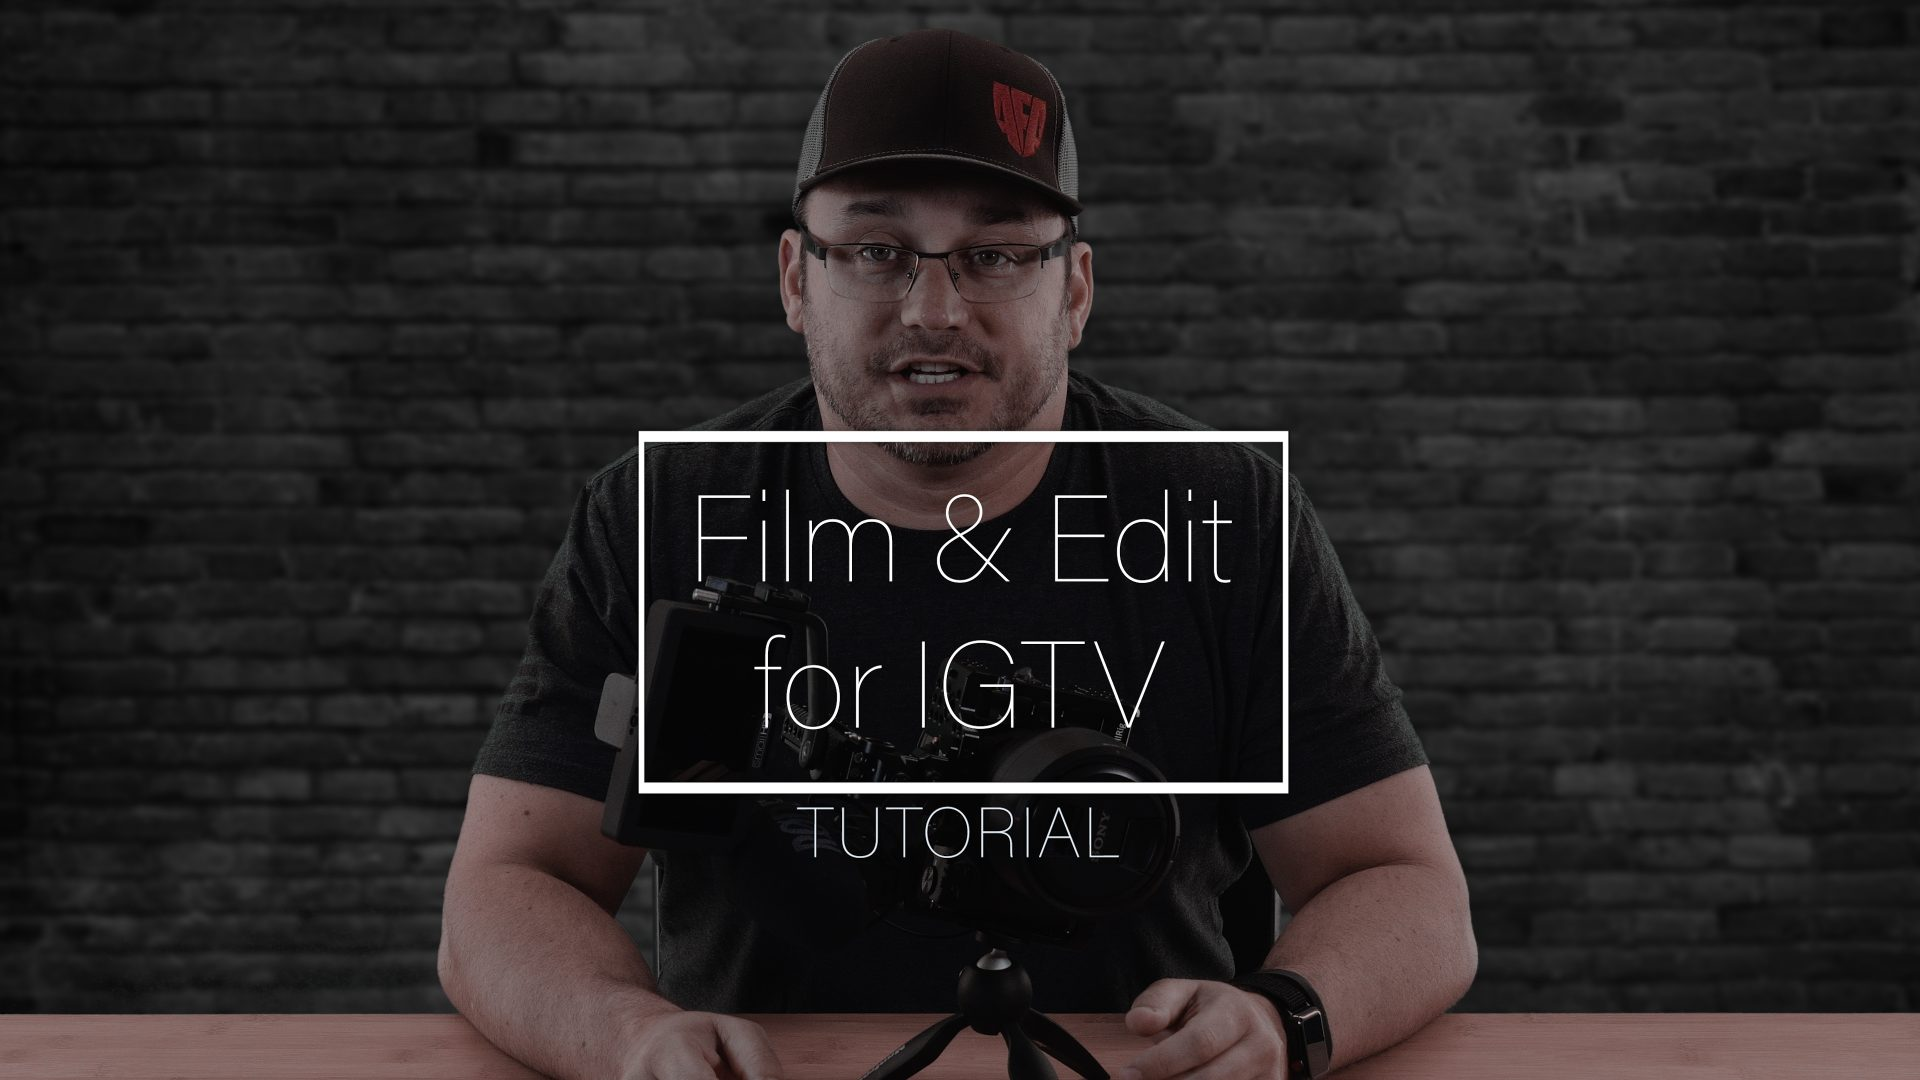 How to Film & Edit Video for IGTV